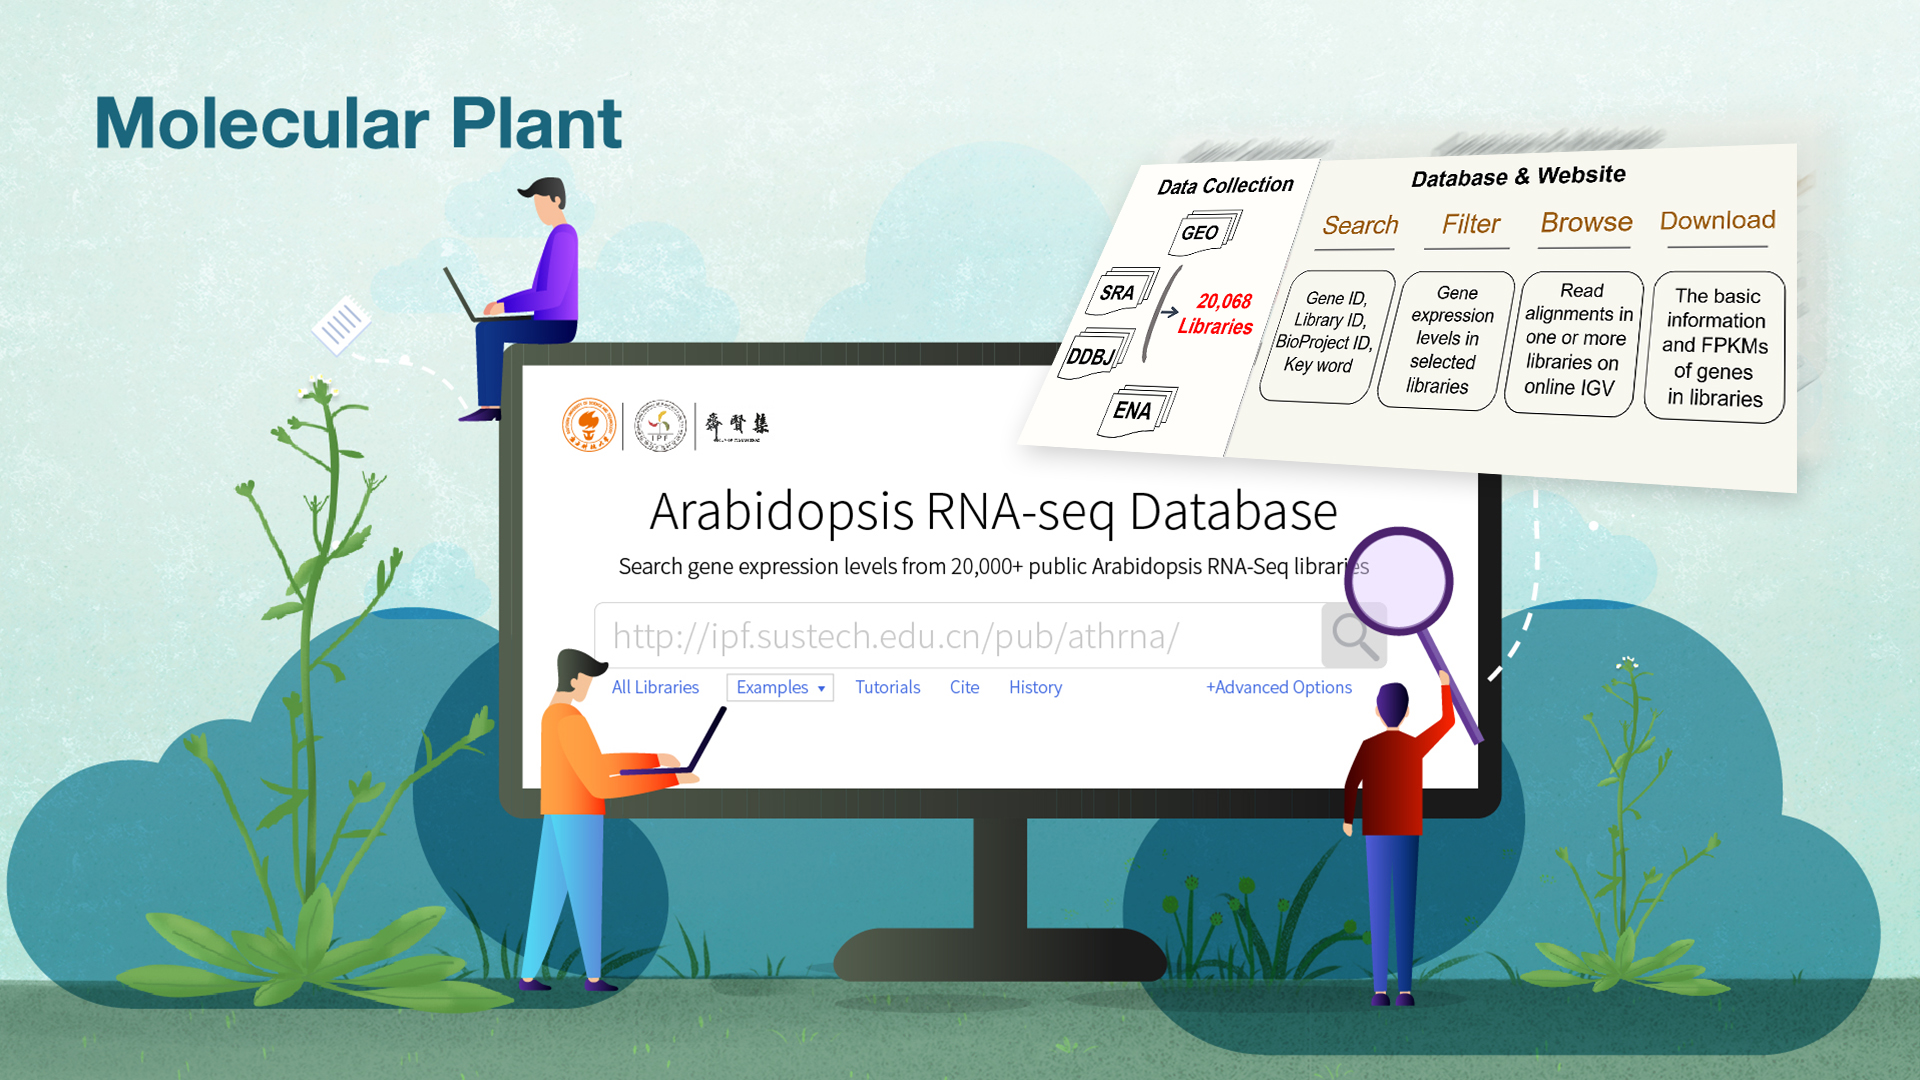 Comprehensive online database deployed for exploring massive public plant RNA-seq data